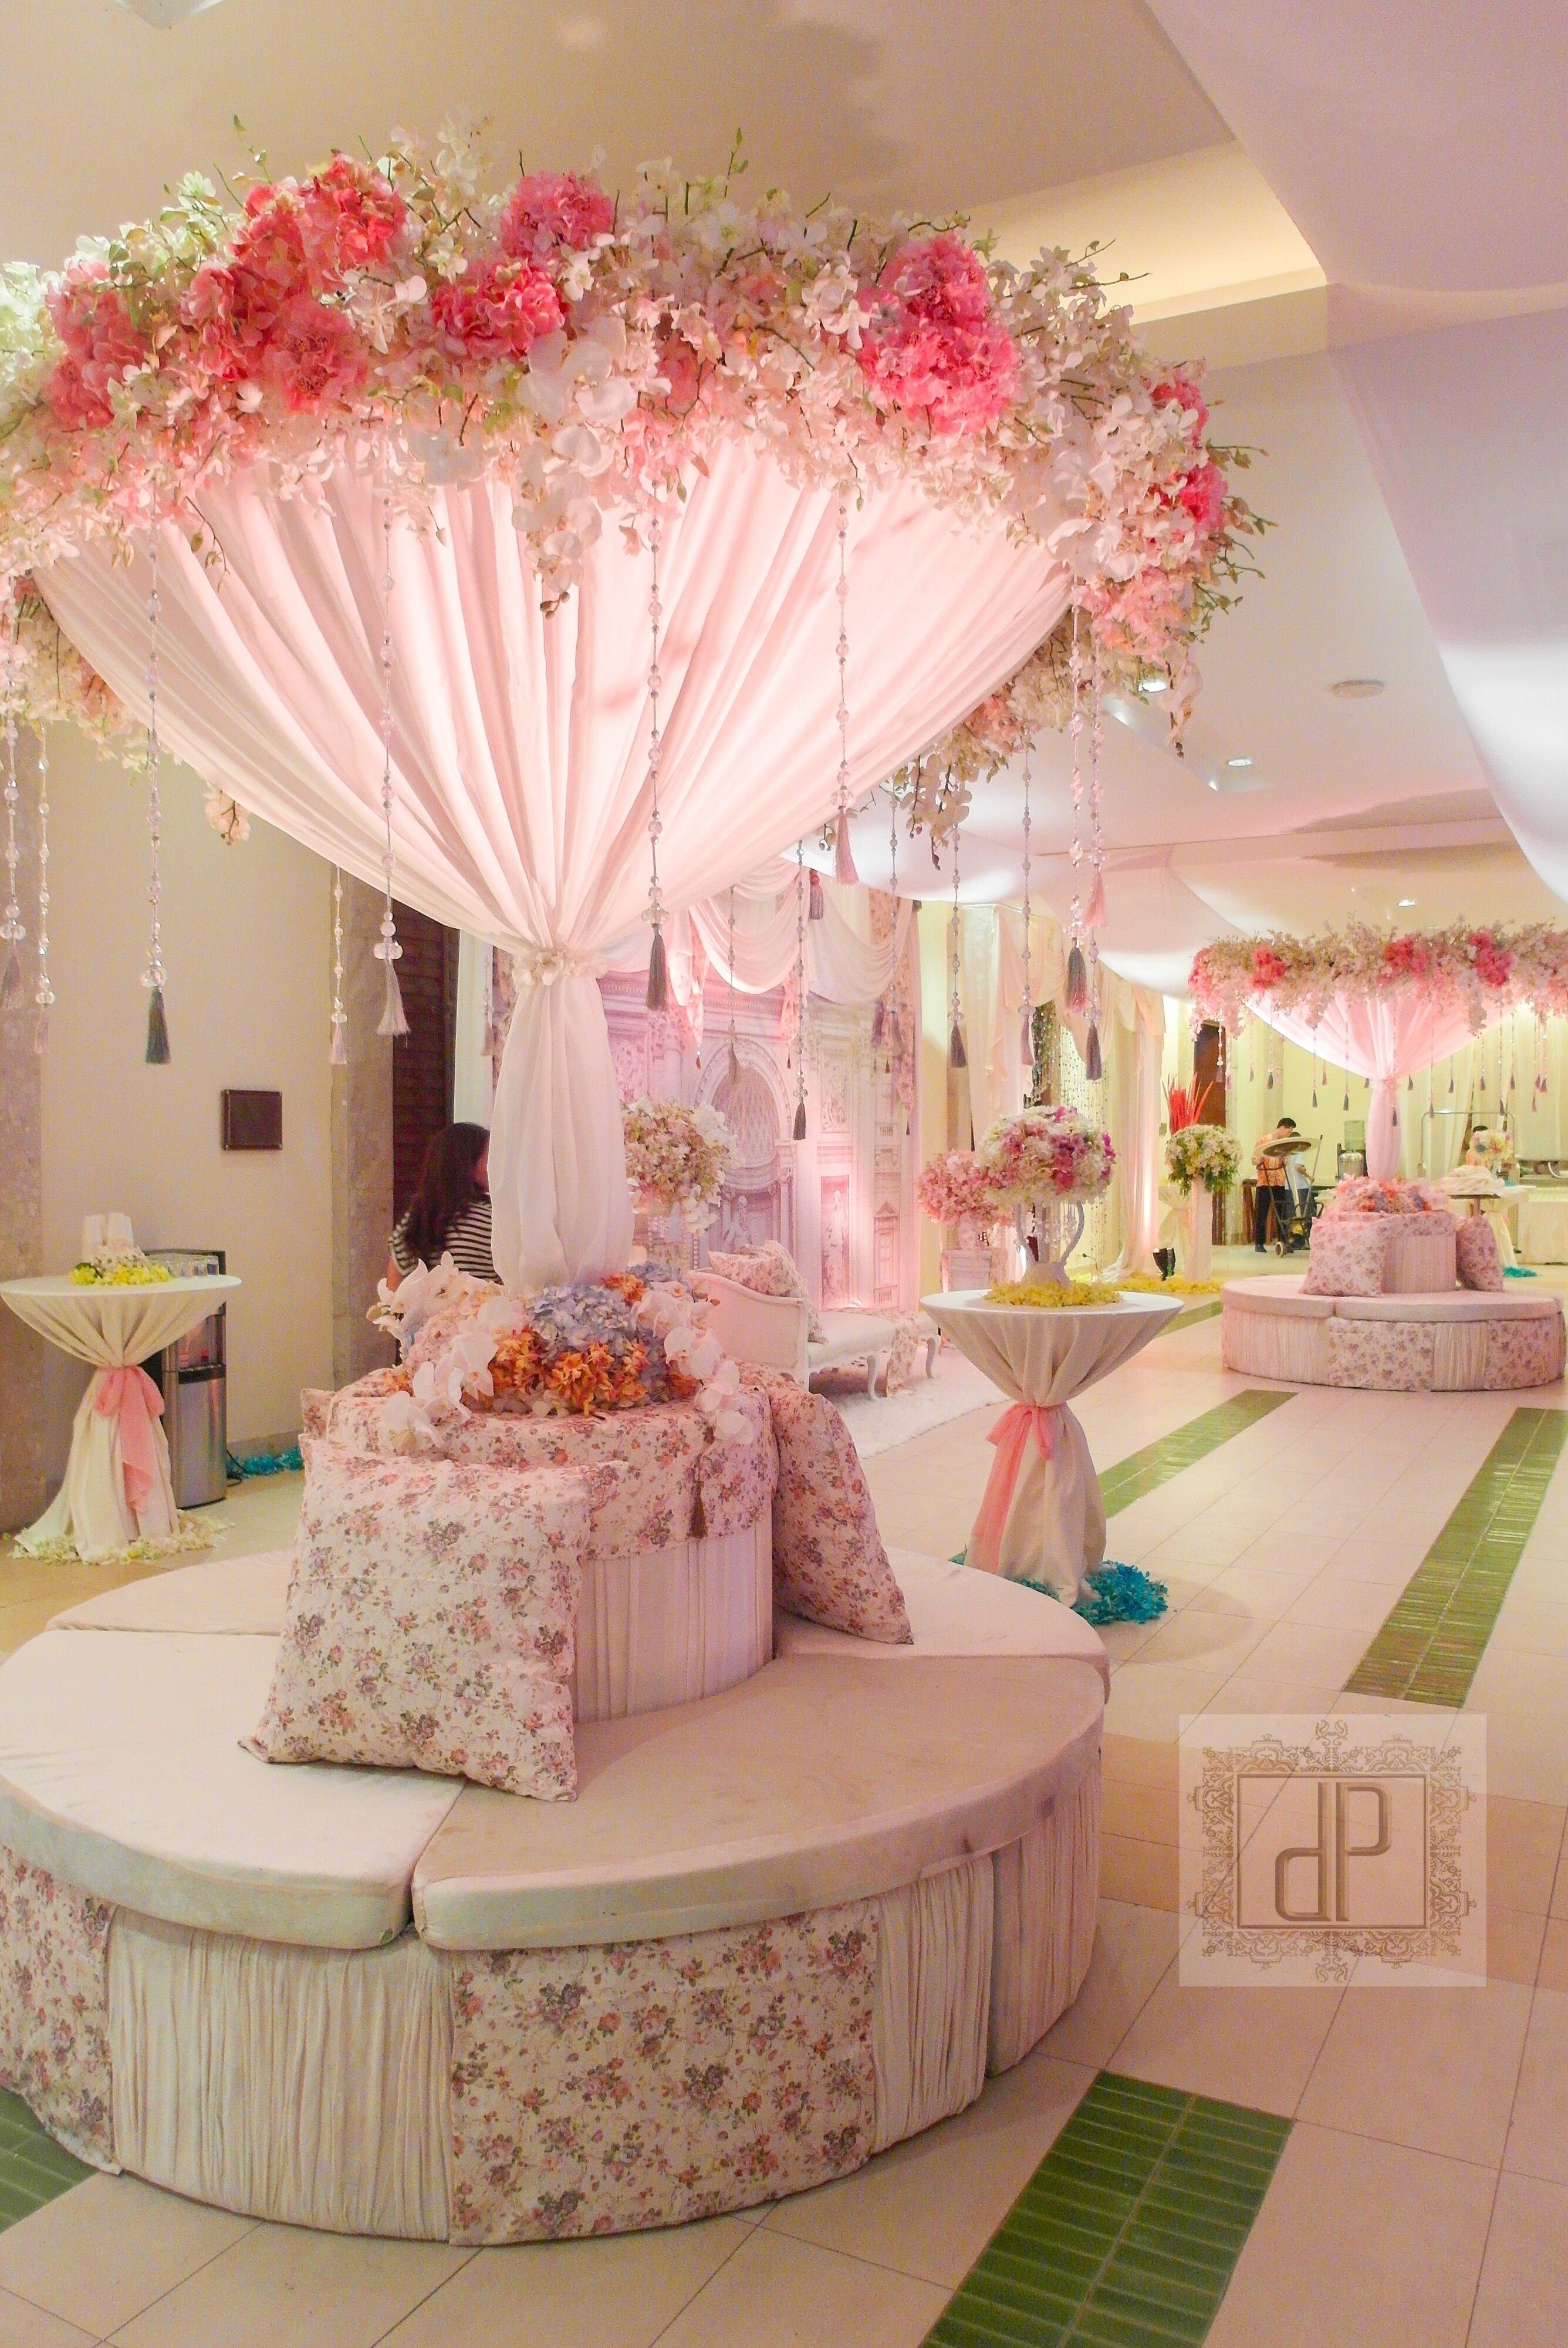 Sweet reception night party | Reception Decor in 2018 | Pinterest ...